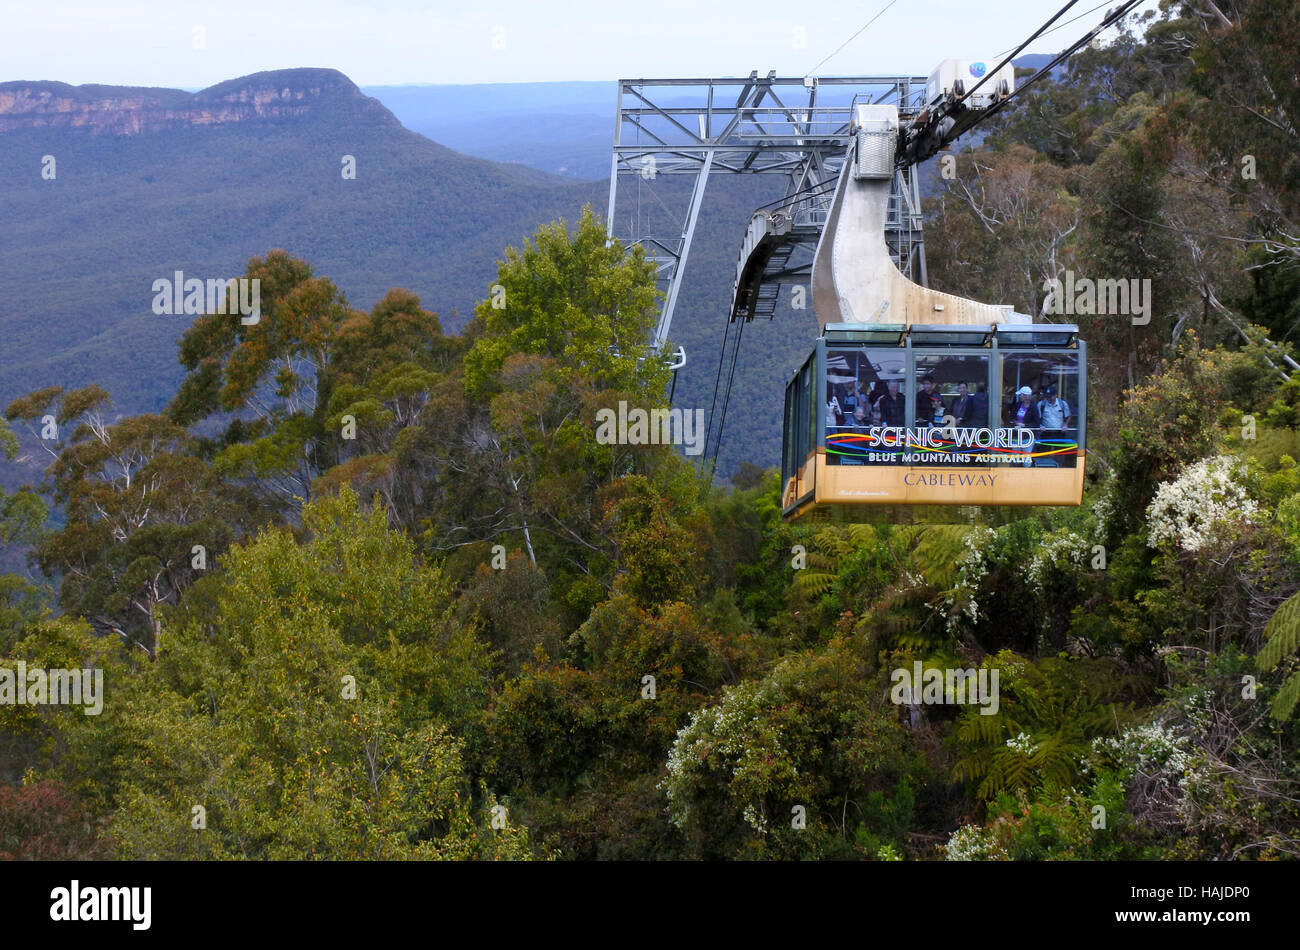 KATOOMBA, AUS - OCT 21 2016:Katoomba Scenic World Cableway descends into the Jamison Valley is the steepest and - Stock Image